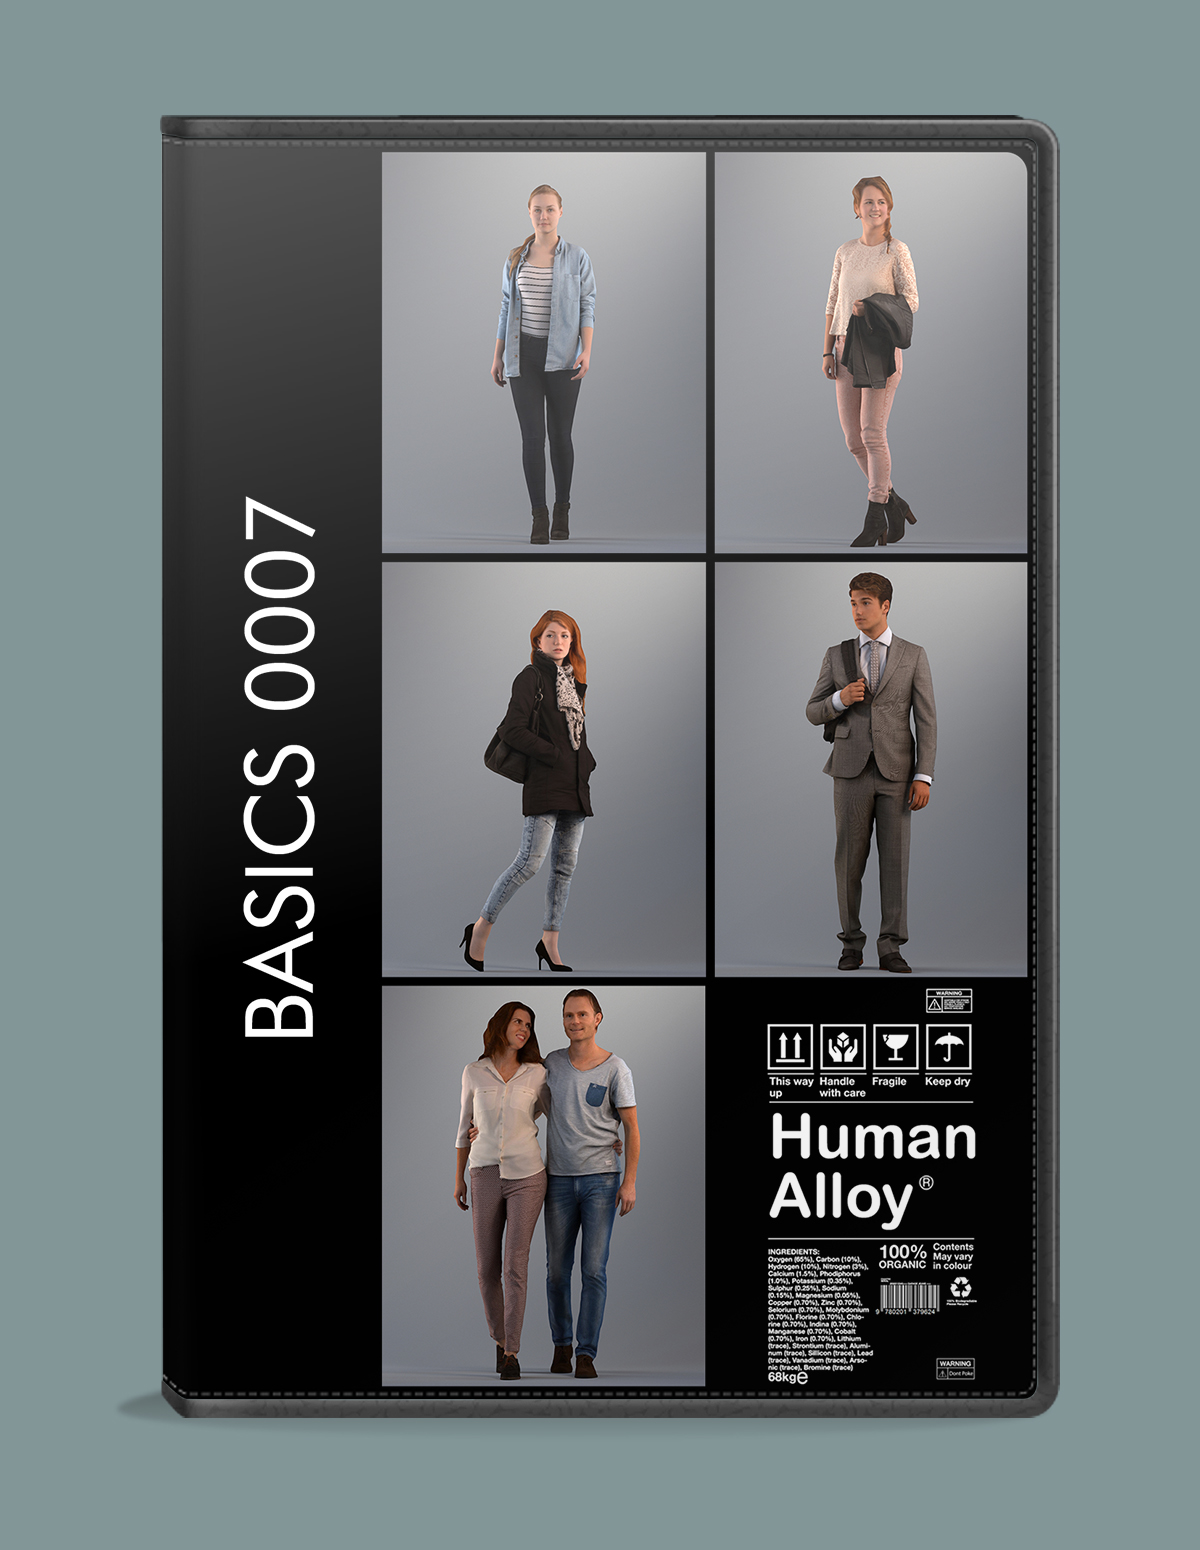 Human Alloy Basics 0007